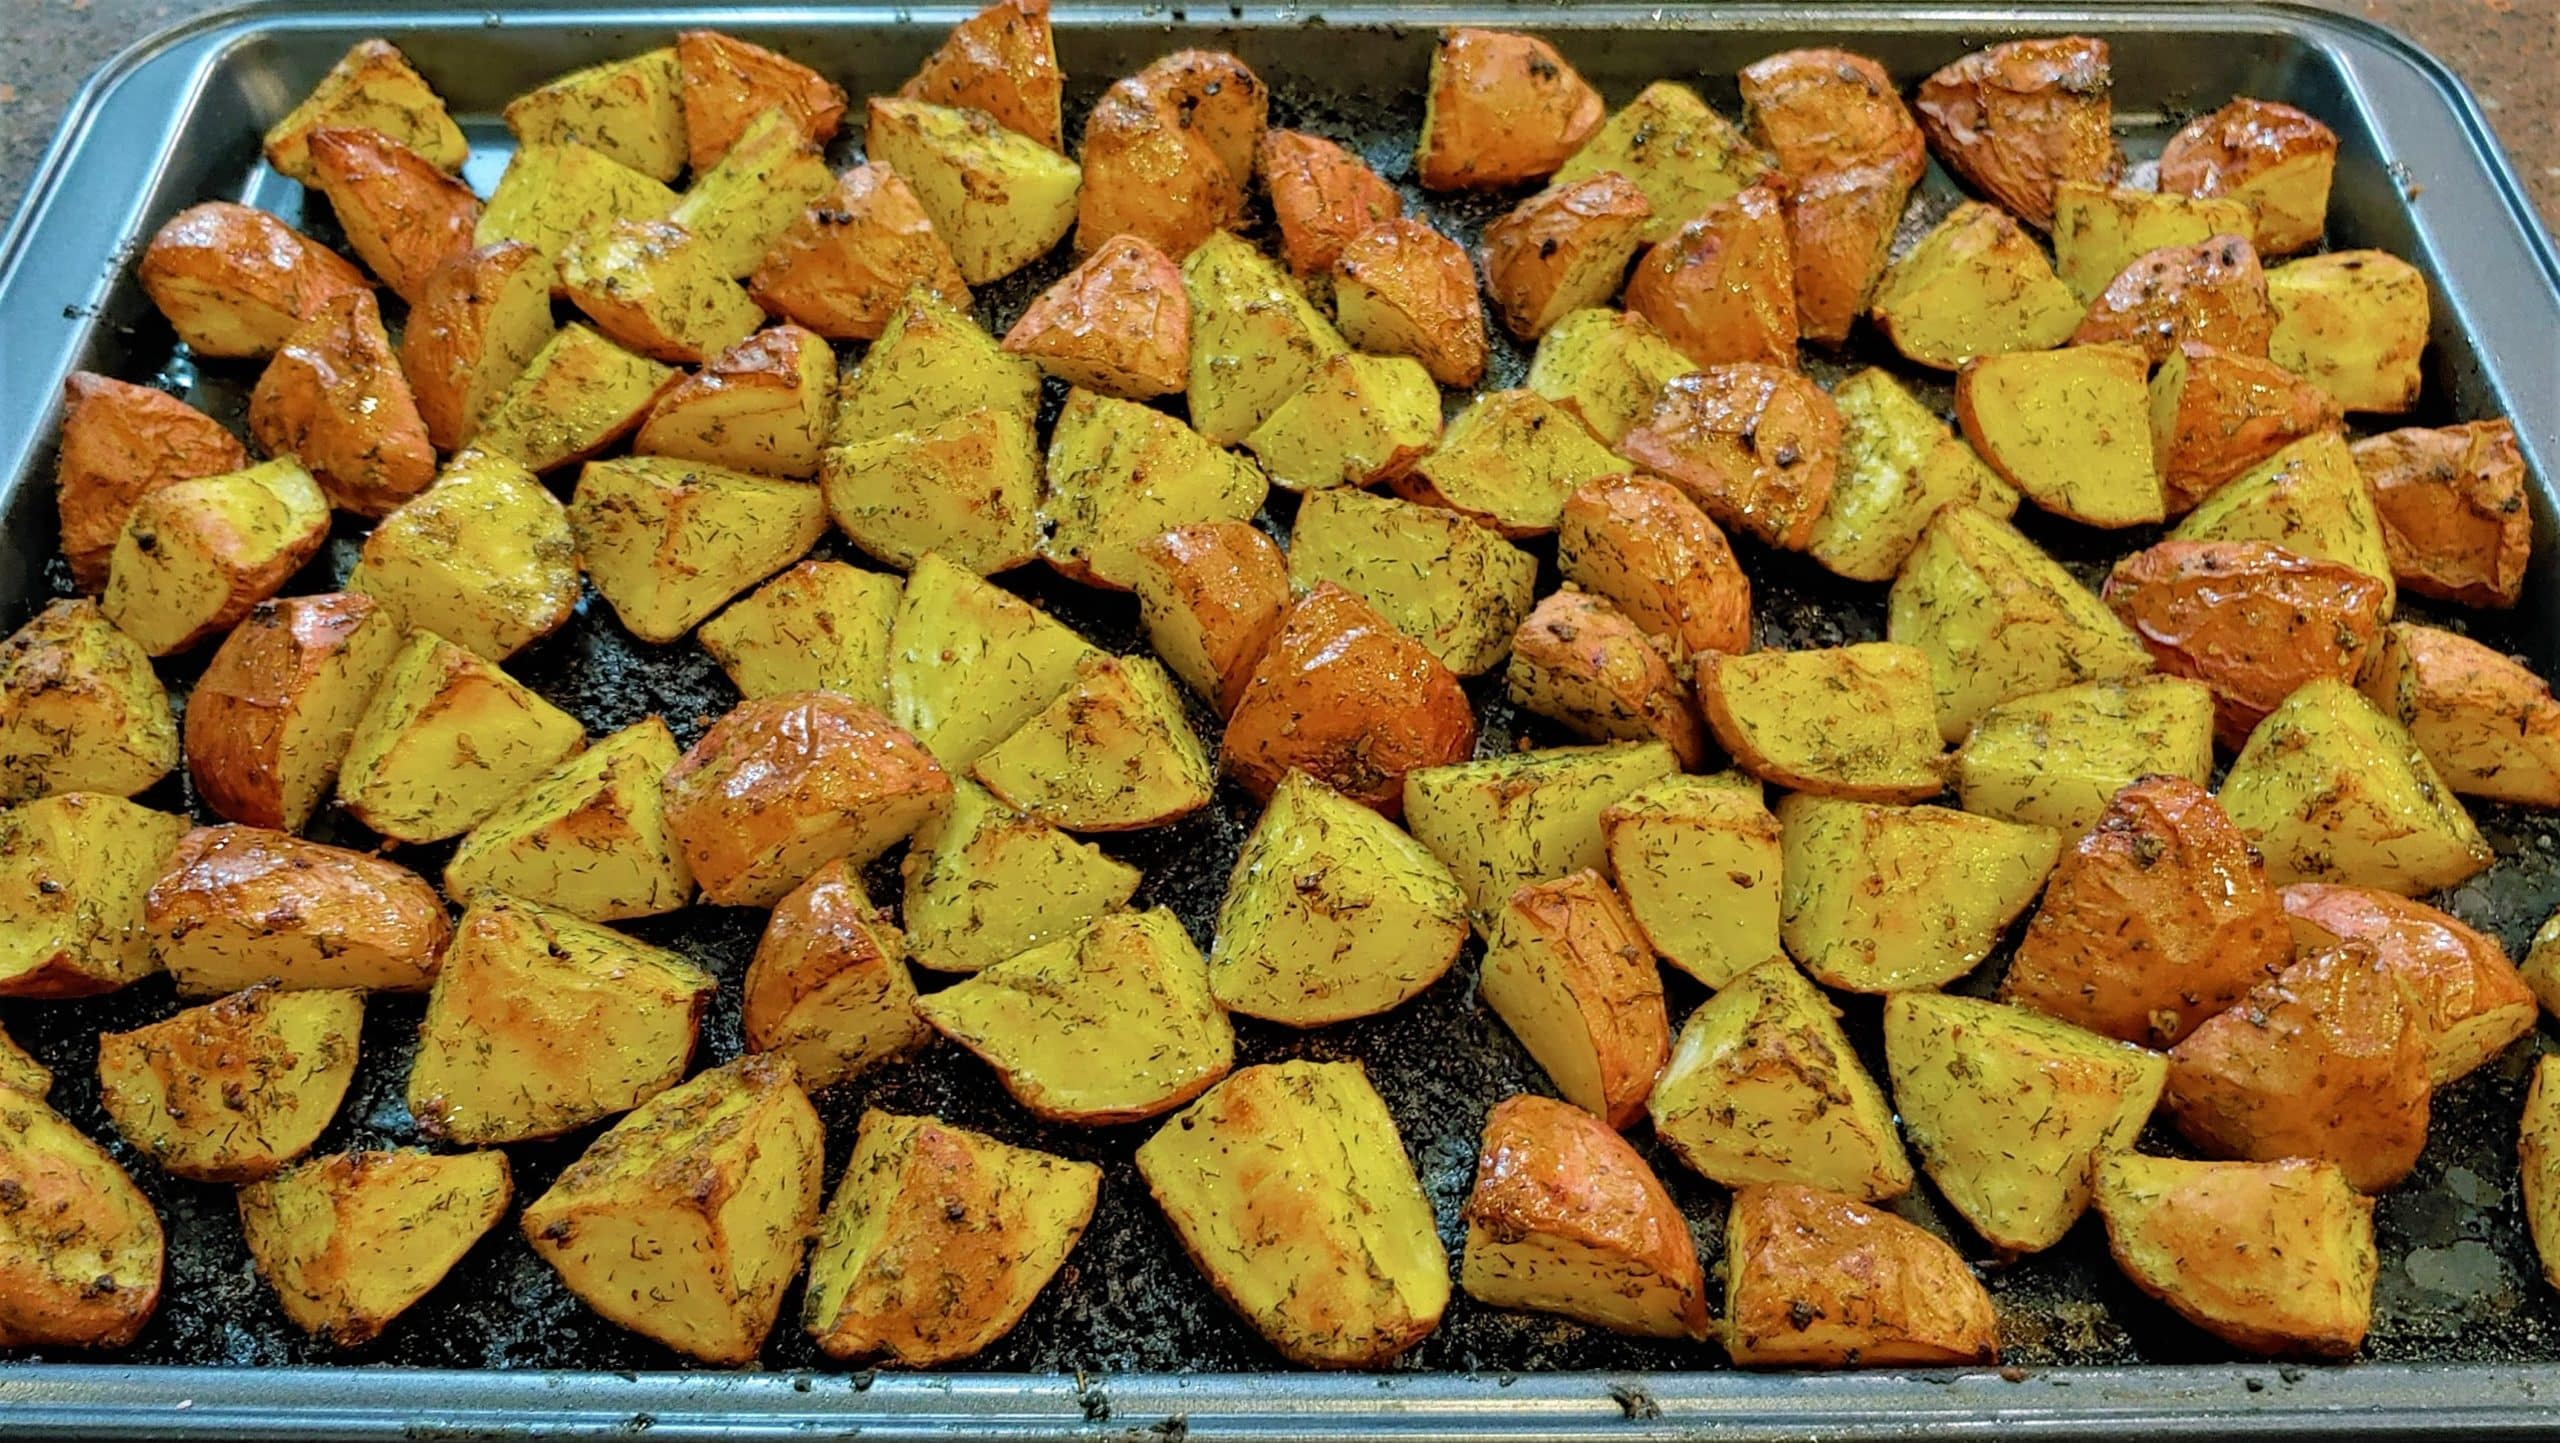 Roasted Red Potatoes - Dining in with Danielle